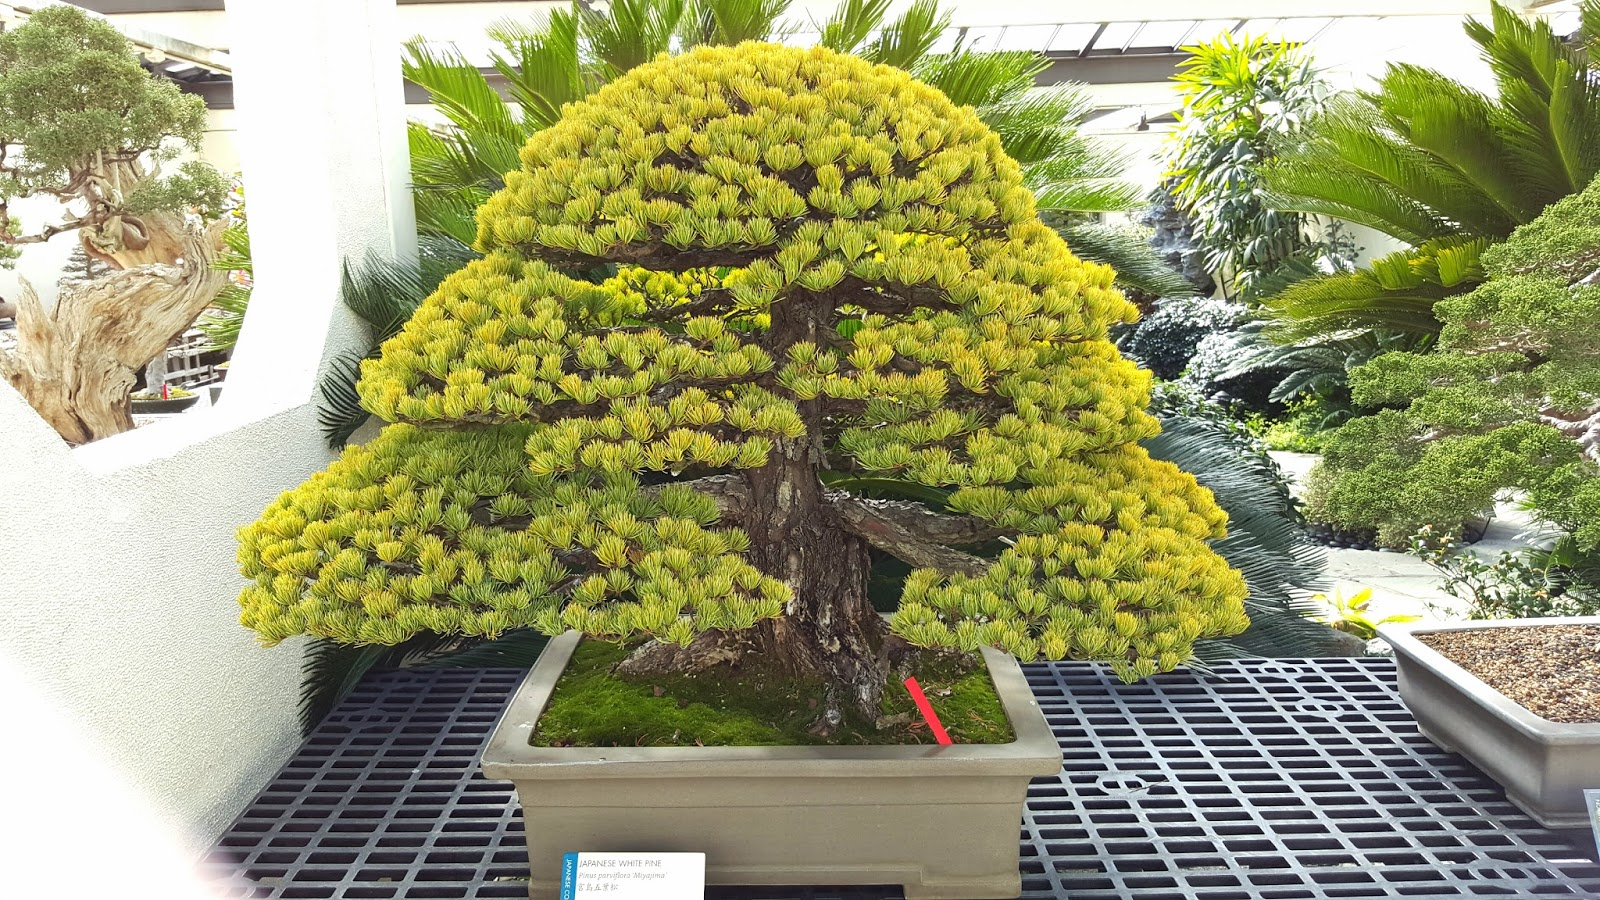 Bonsai Misadventures The Bonsai And Penjing Museum At The